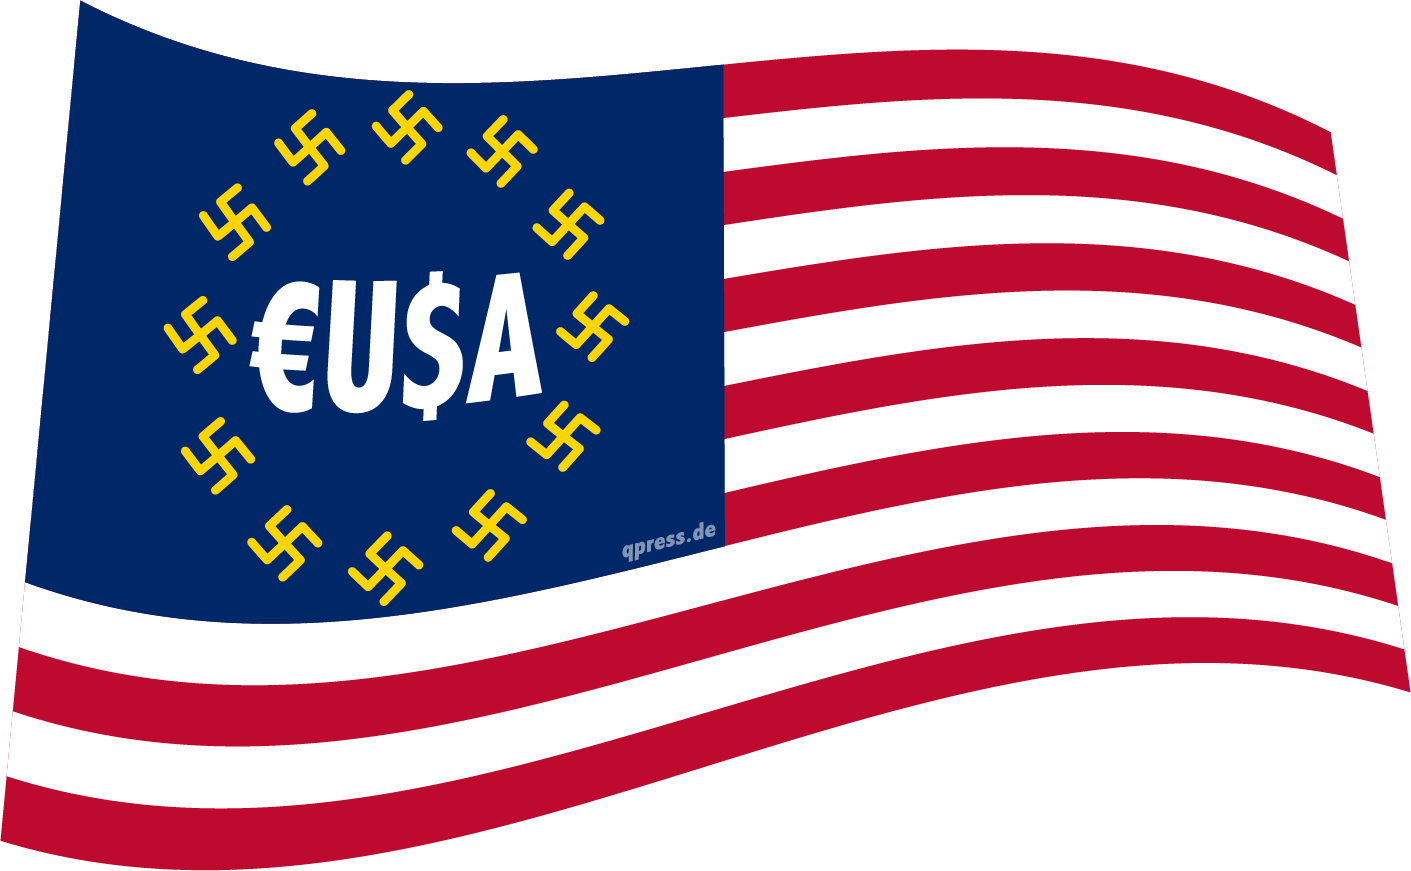 Flag_of_the_United_States europe europa EUSA faschisten qpress